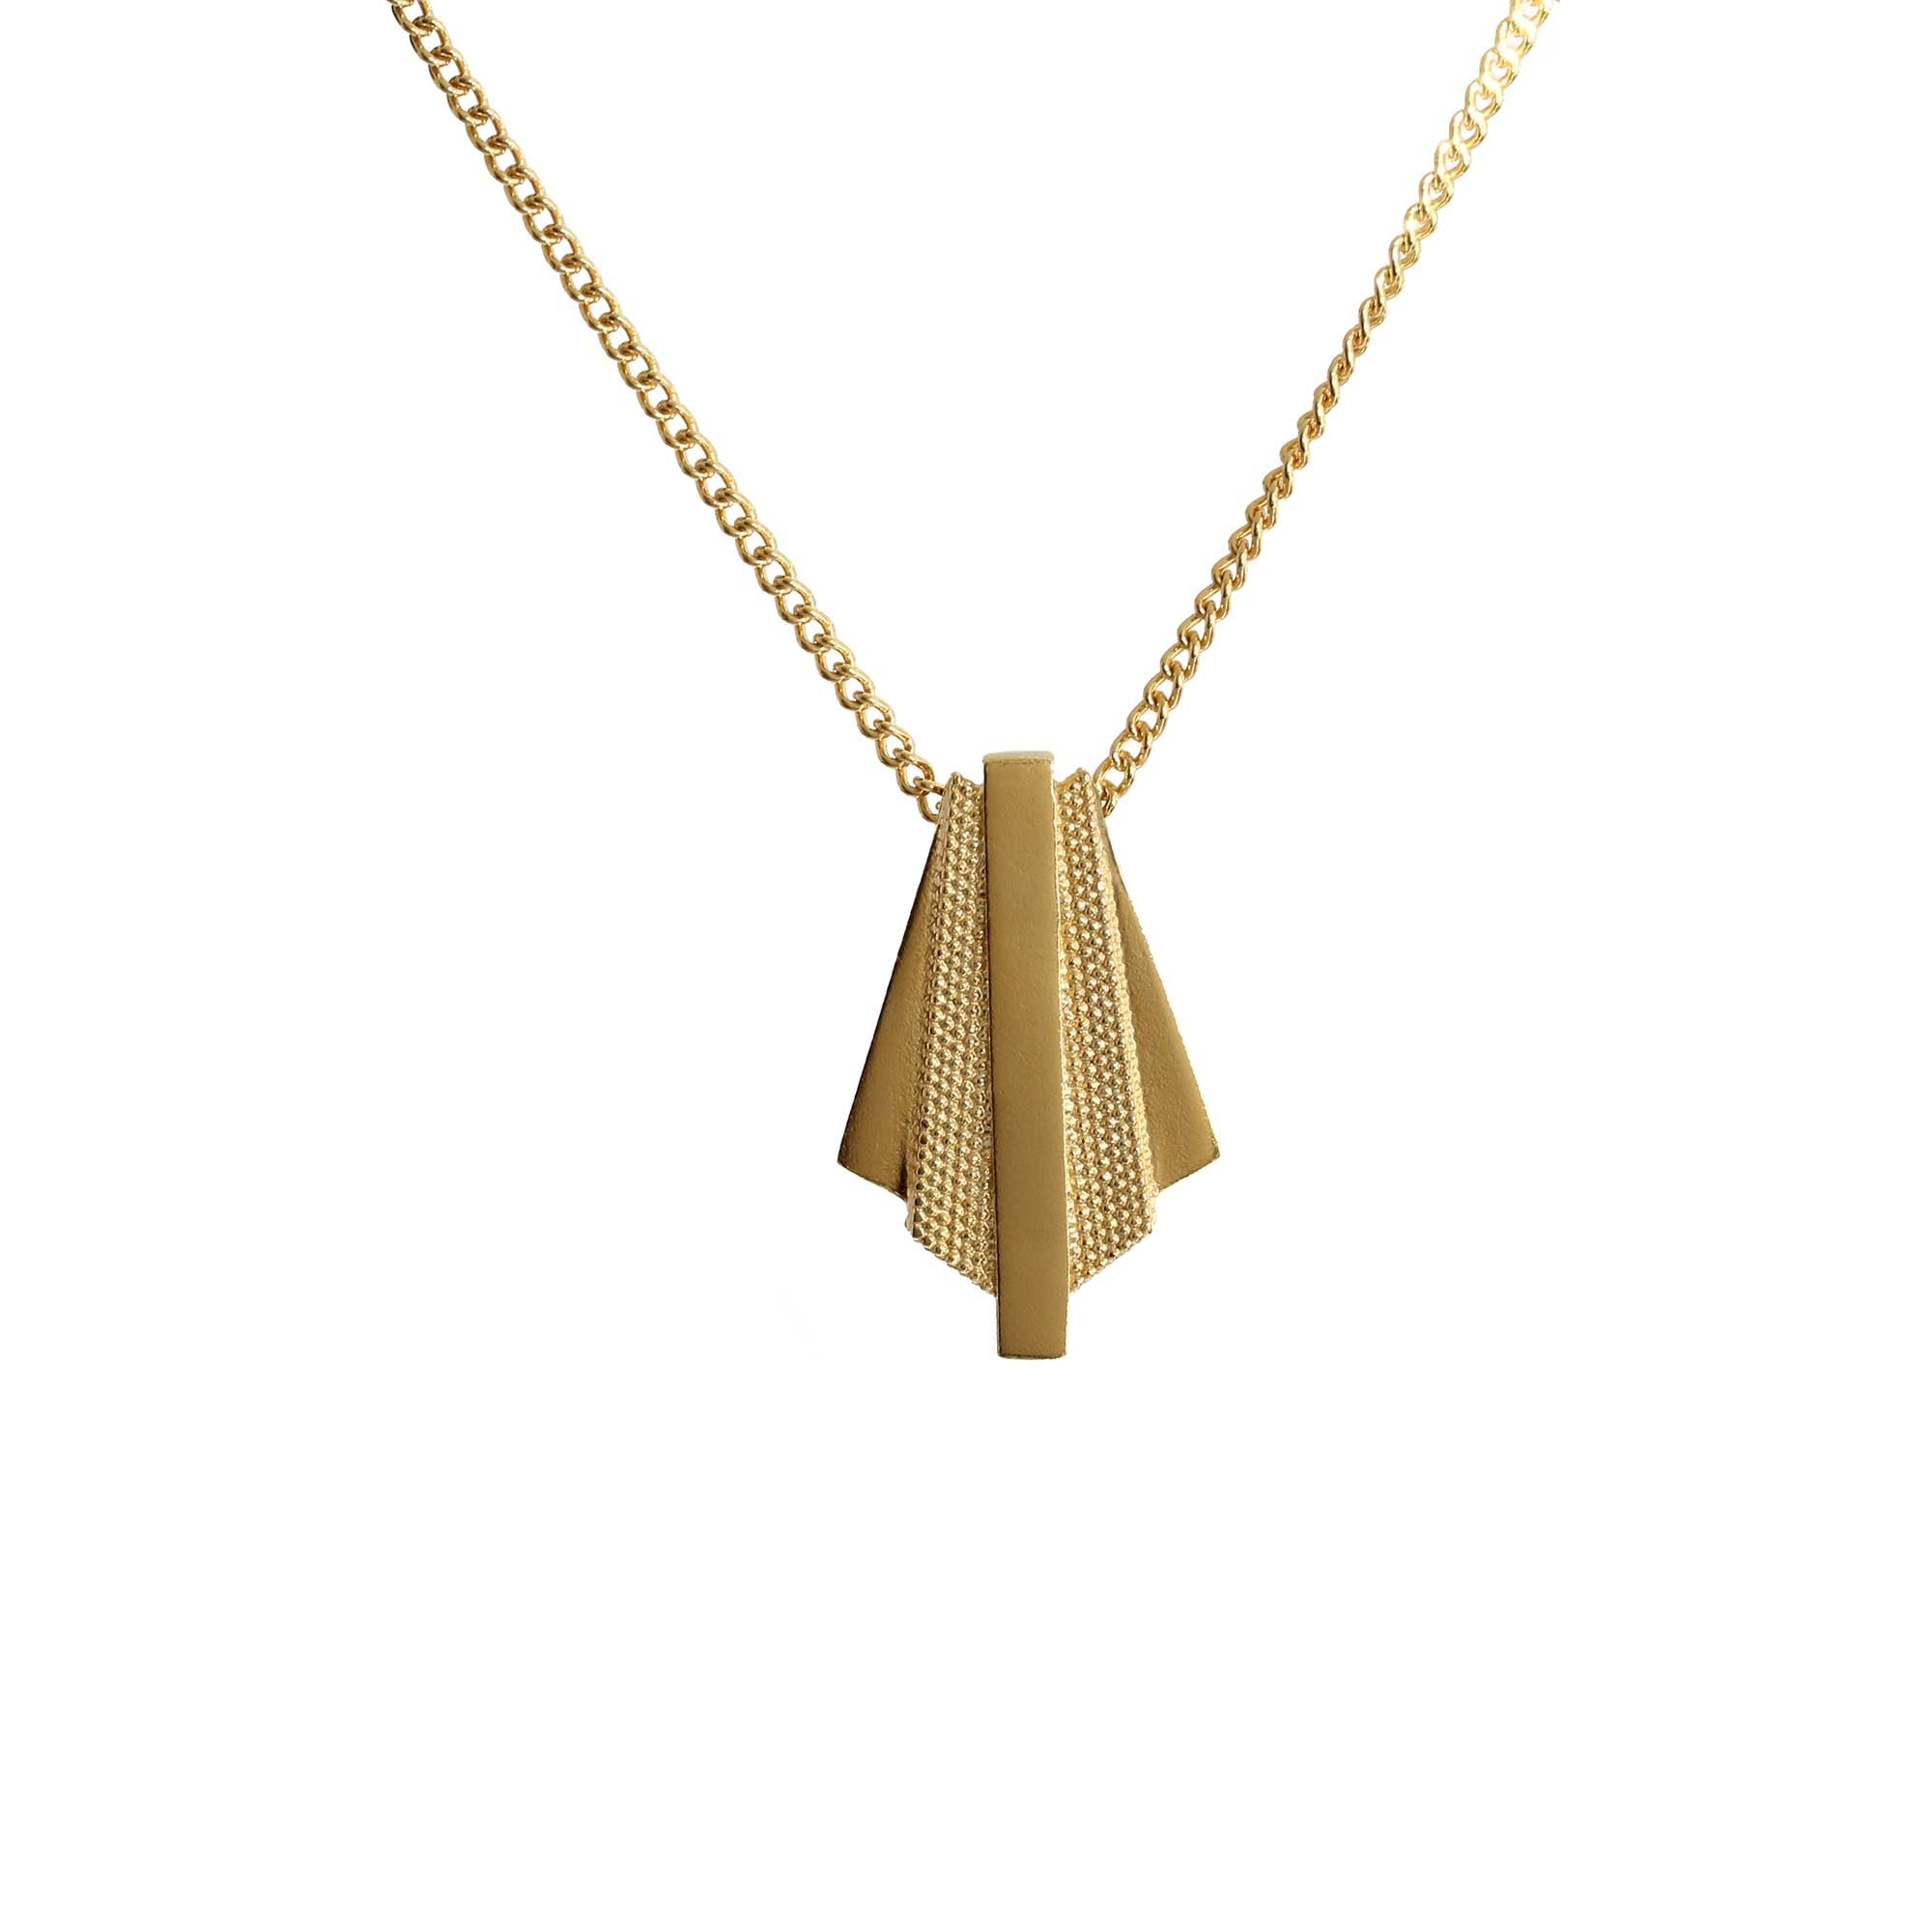 Contrasting textures on the Ruptus Slab Yellow Gold Pendant